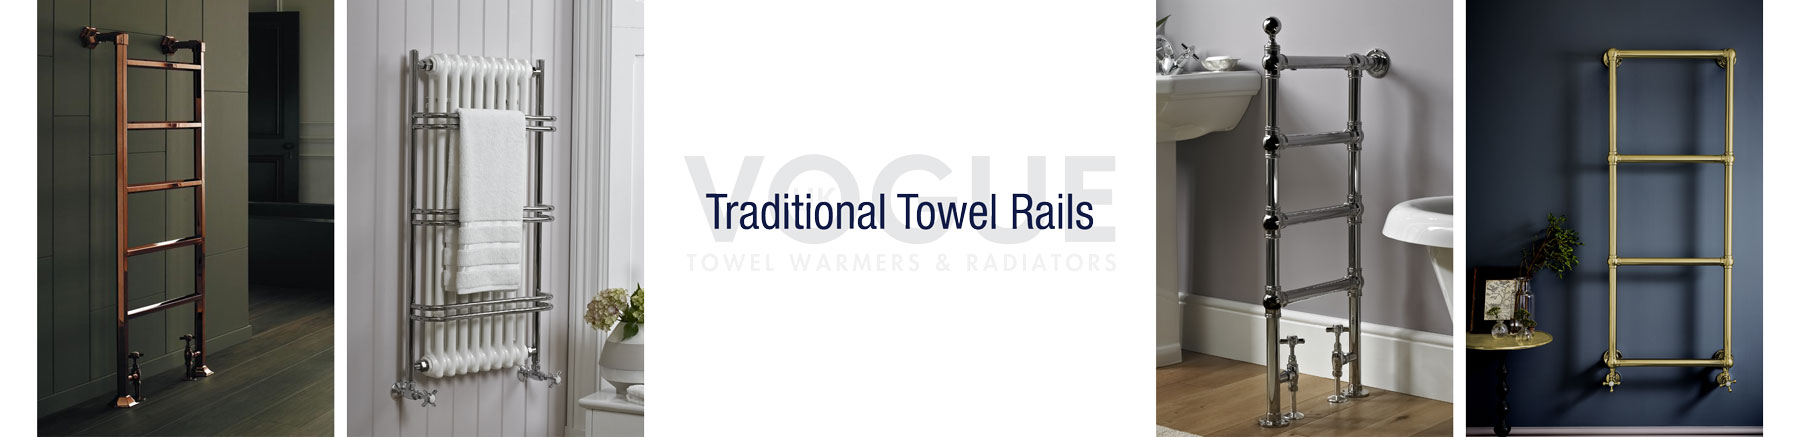 traditional towel rails product header